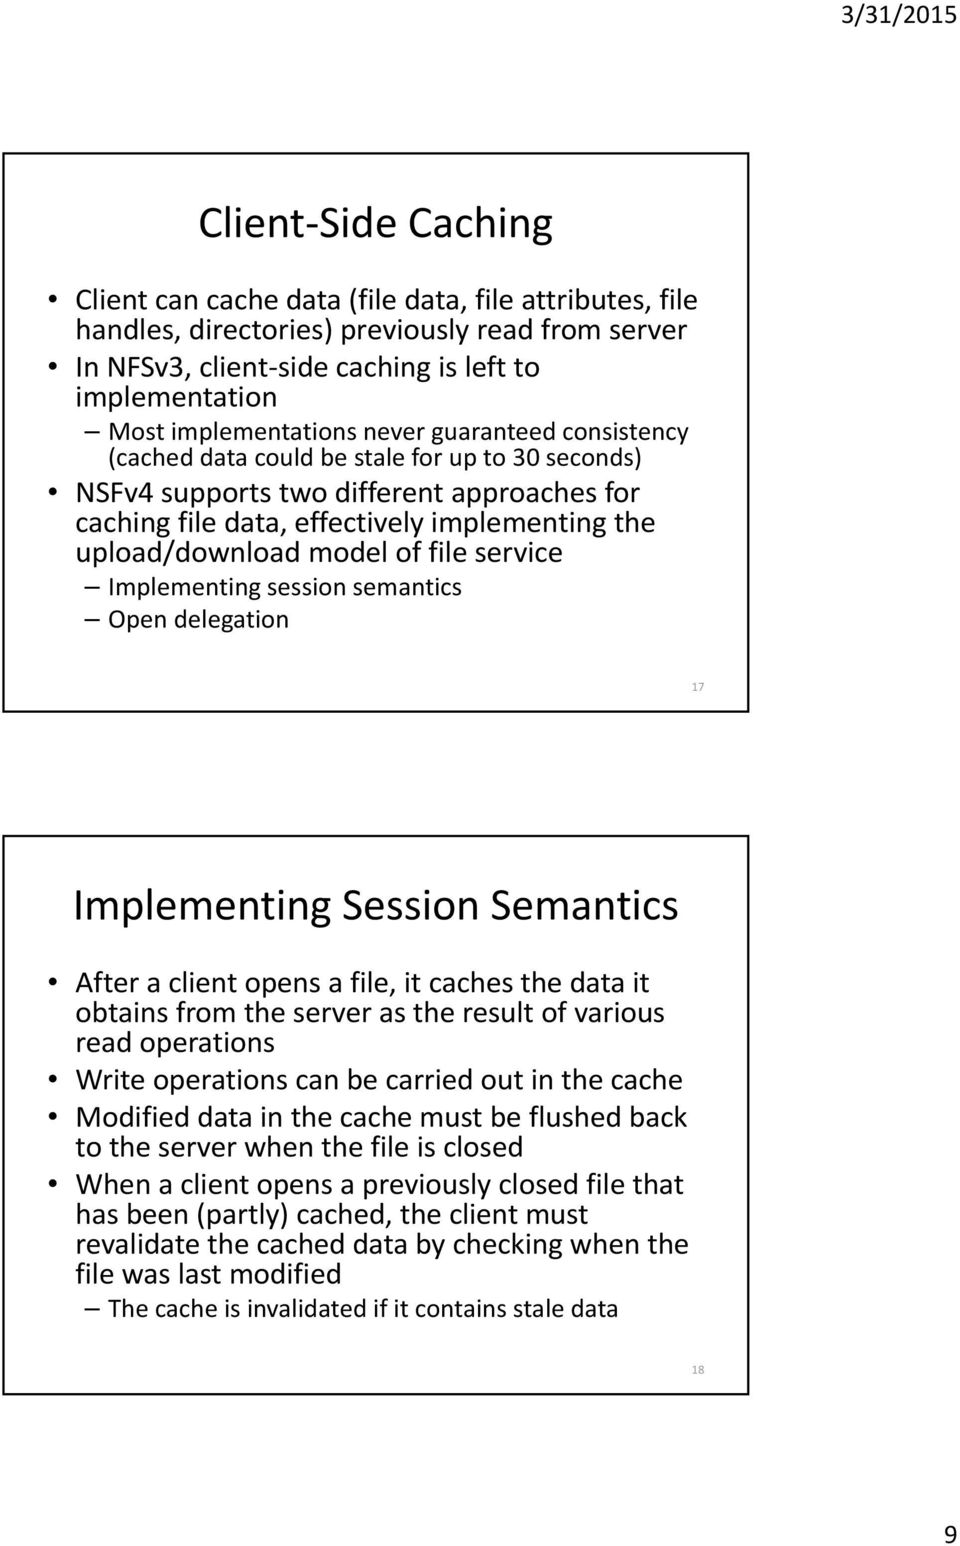 upload/download model of file service Implementing session semantics Open delegation 17 Implementing Session Semantics After a client opens a file, it caches the data it obtains from the server as